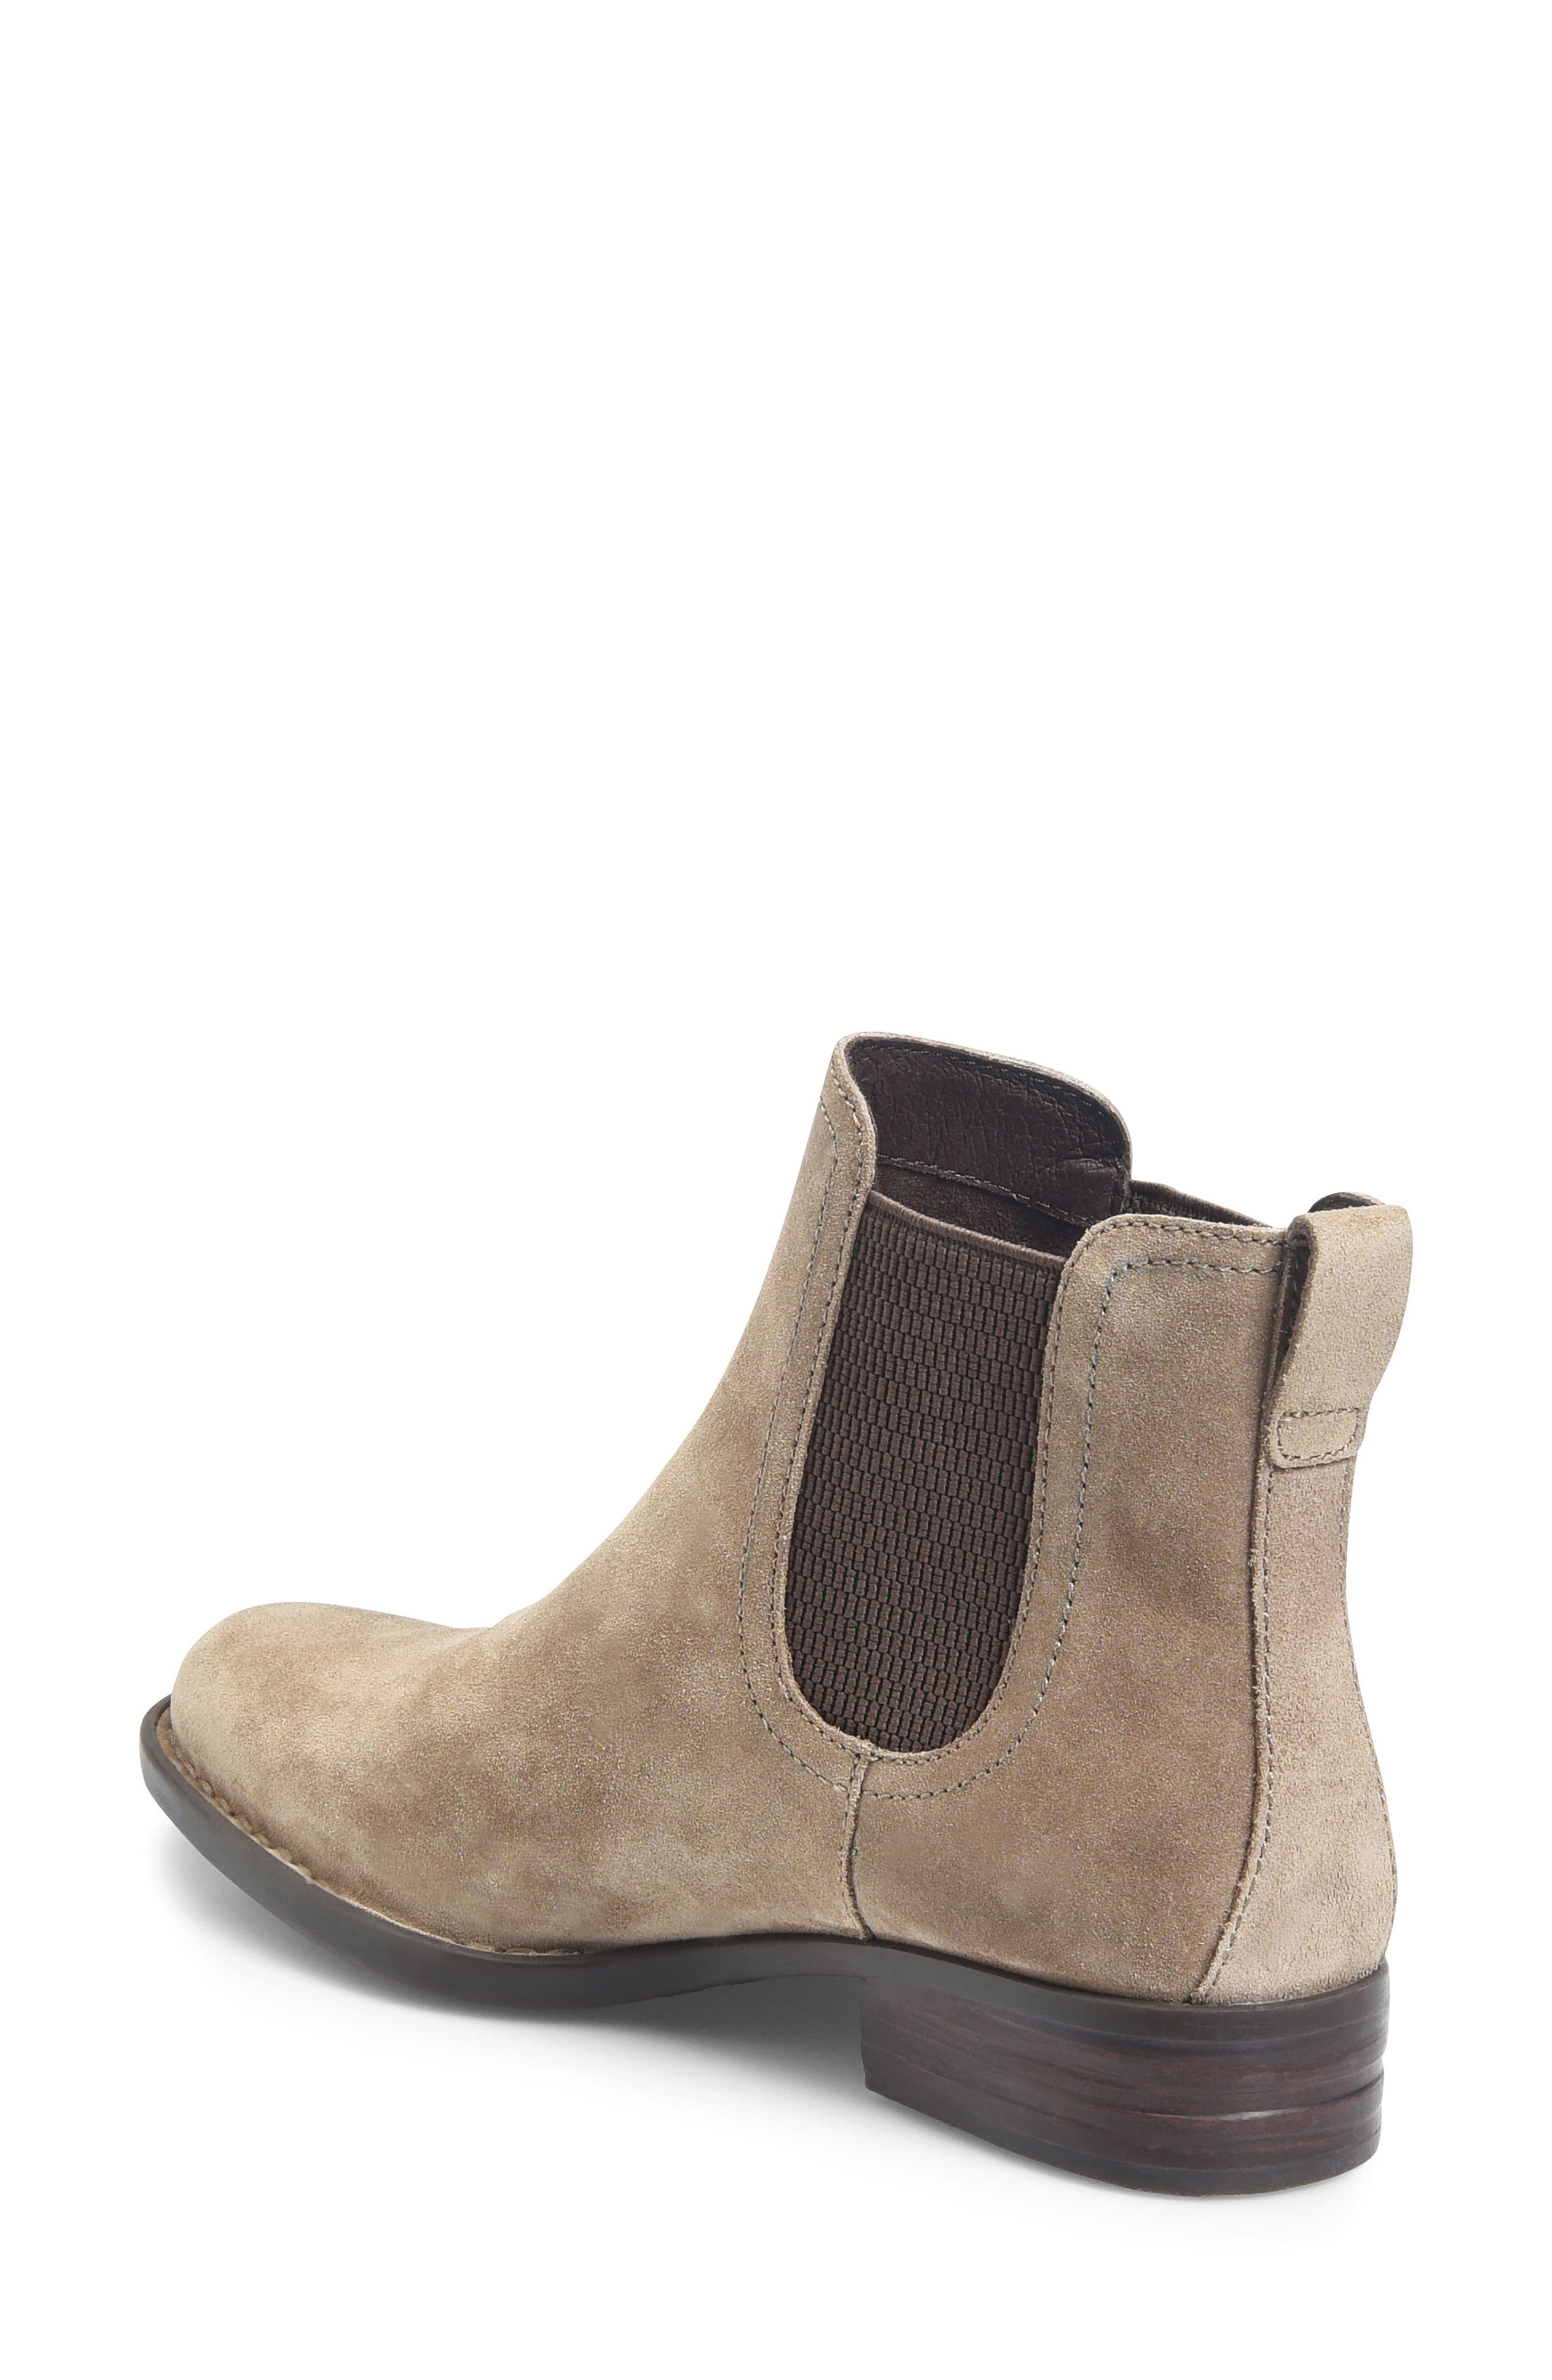 Casco Chelsea Boot,                             Alternate thumbnail 2, color,                             Taupe Suede